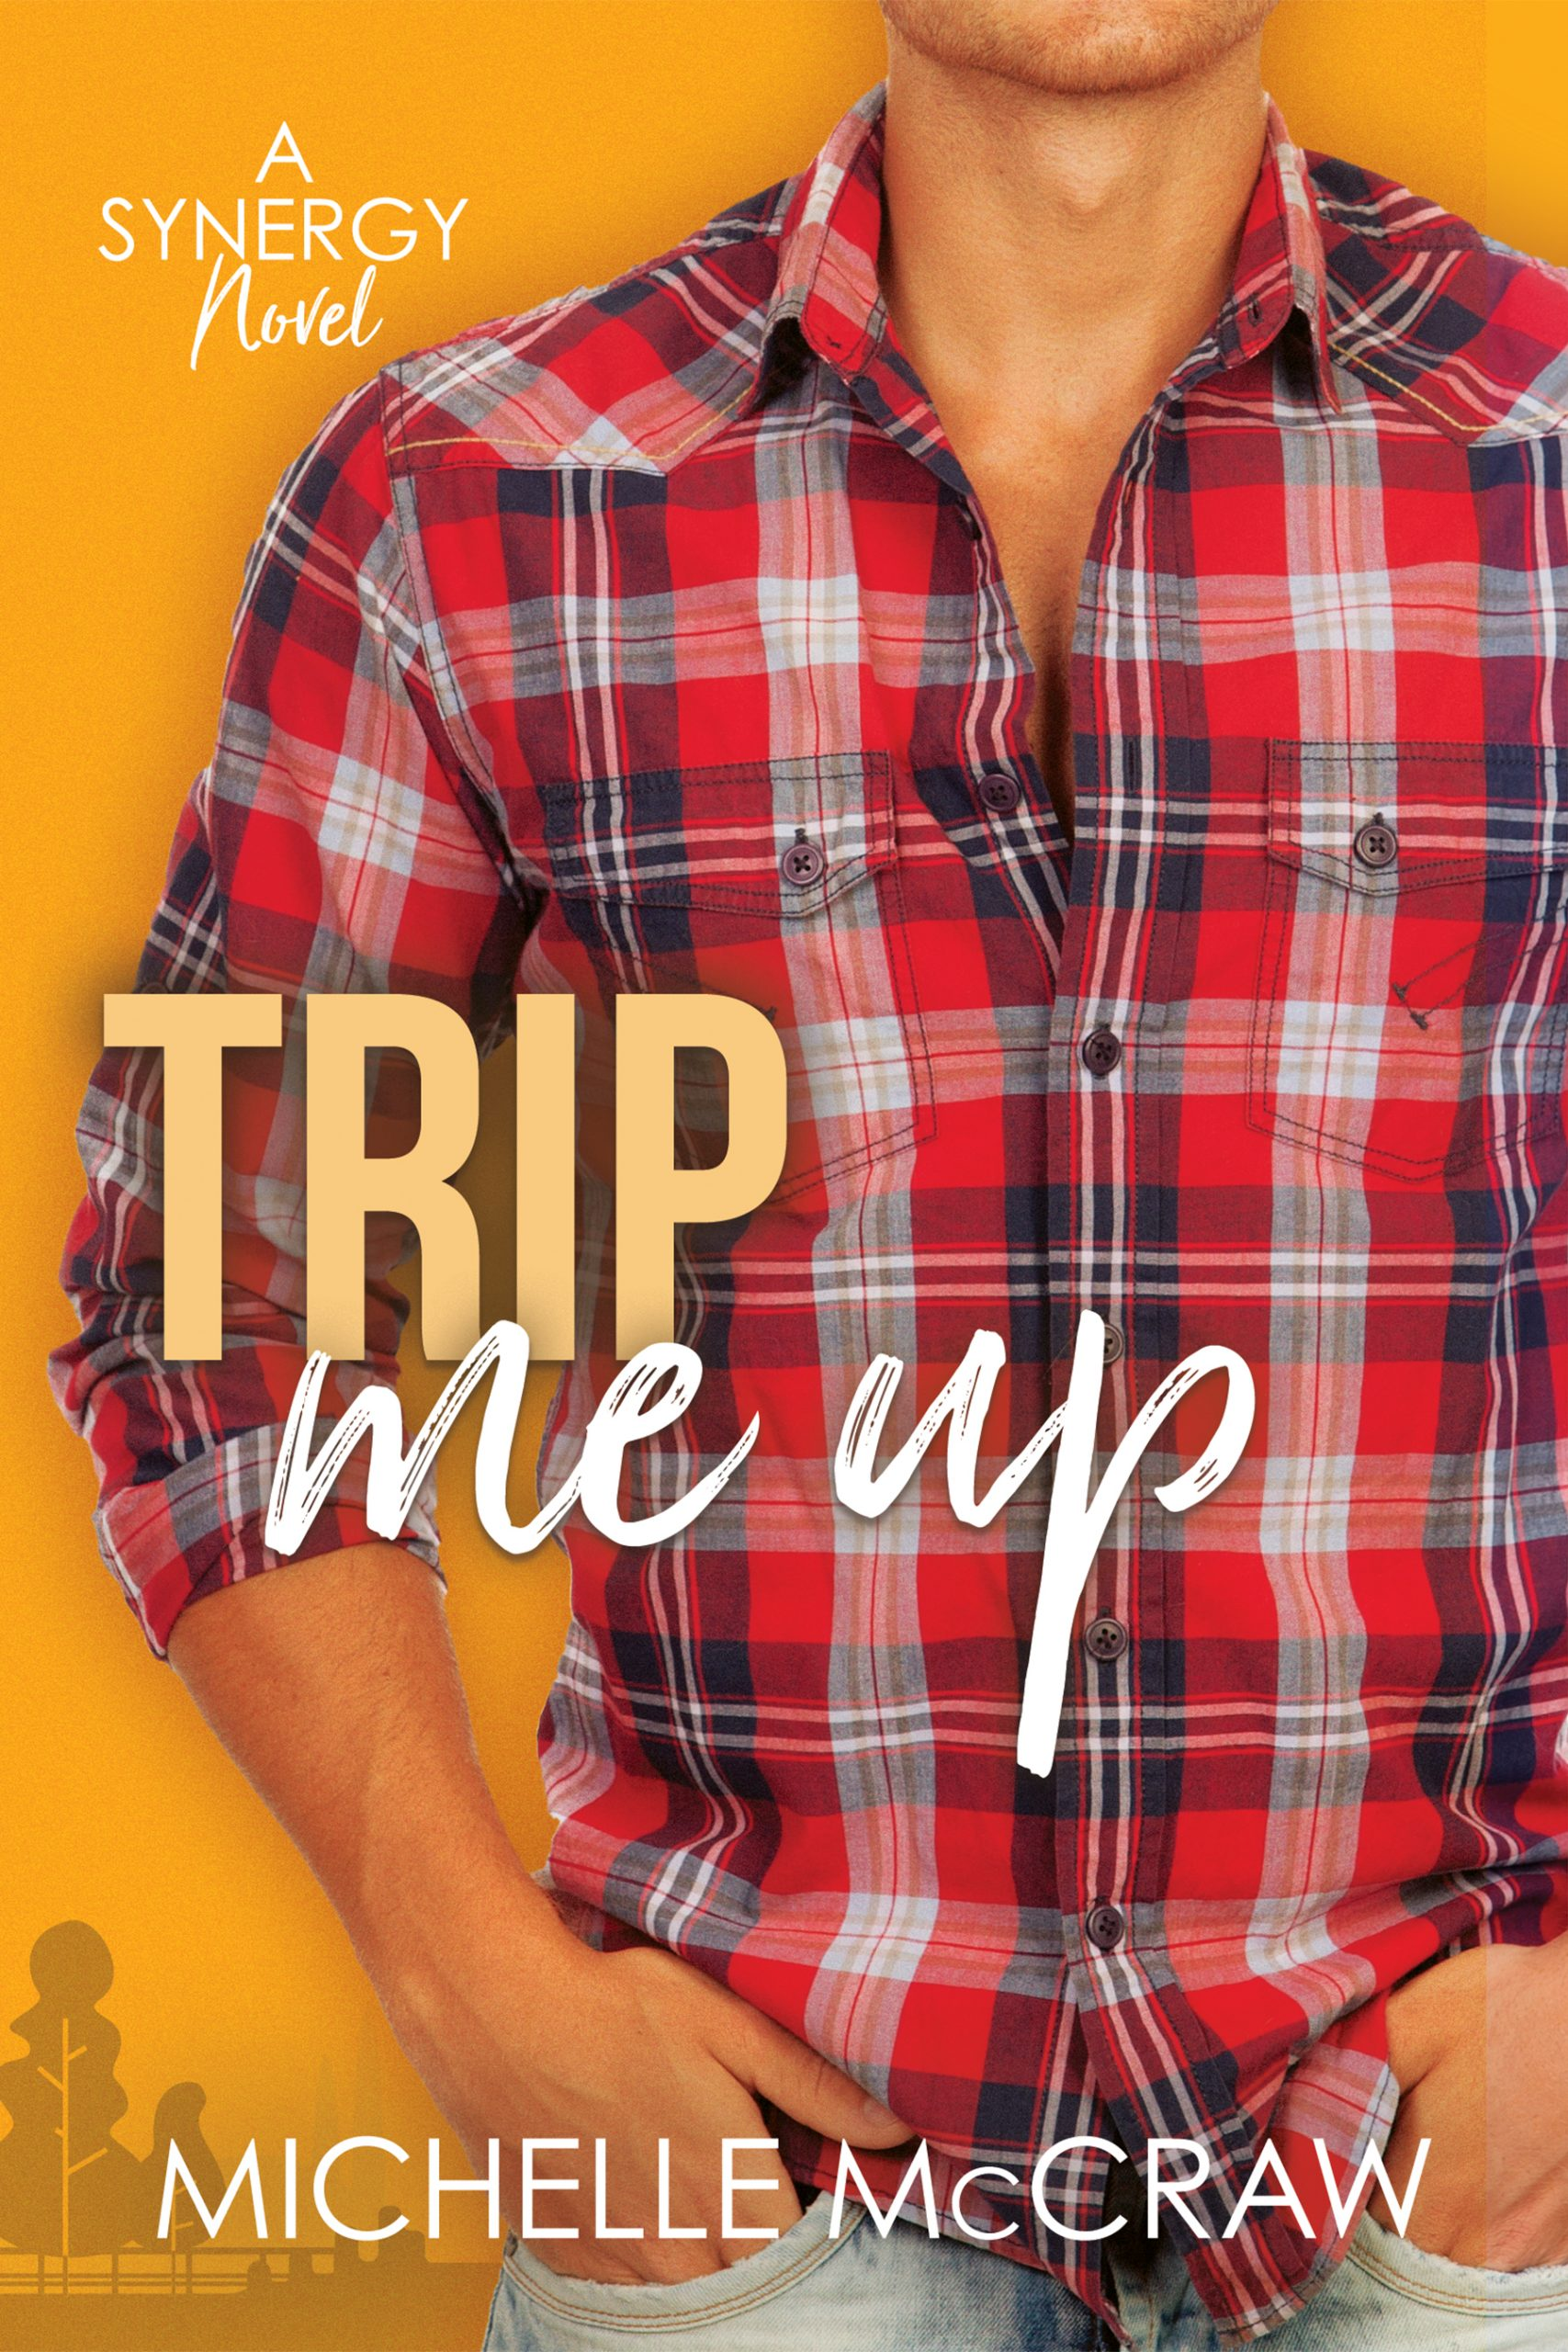 Cover of Trip Me Up by Michelle McCraw, a man wearing a red, white, and black plaid shirt, sleeves rolled up, hands in his pockets, against a yellow-orange background